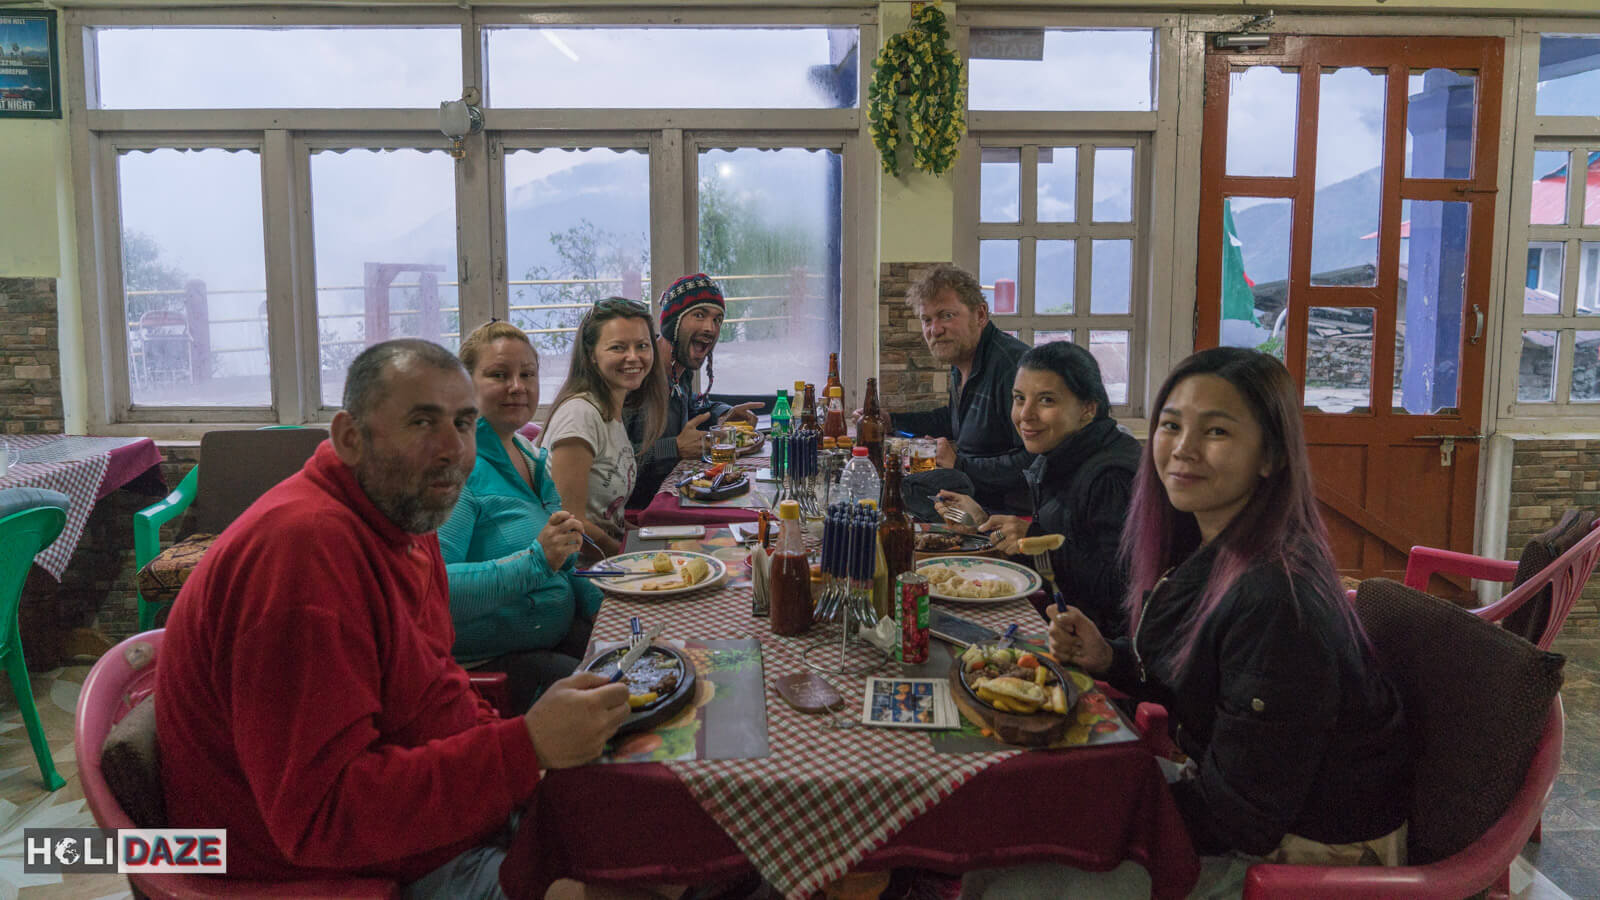 Our trekking group gathering for food and drinks at our guesthouse in Ghorepani